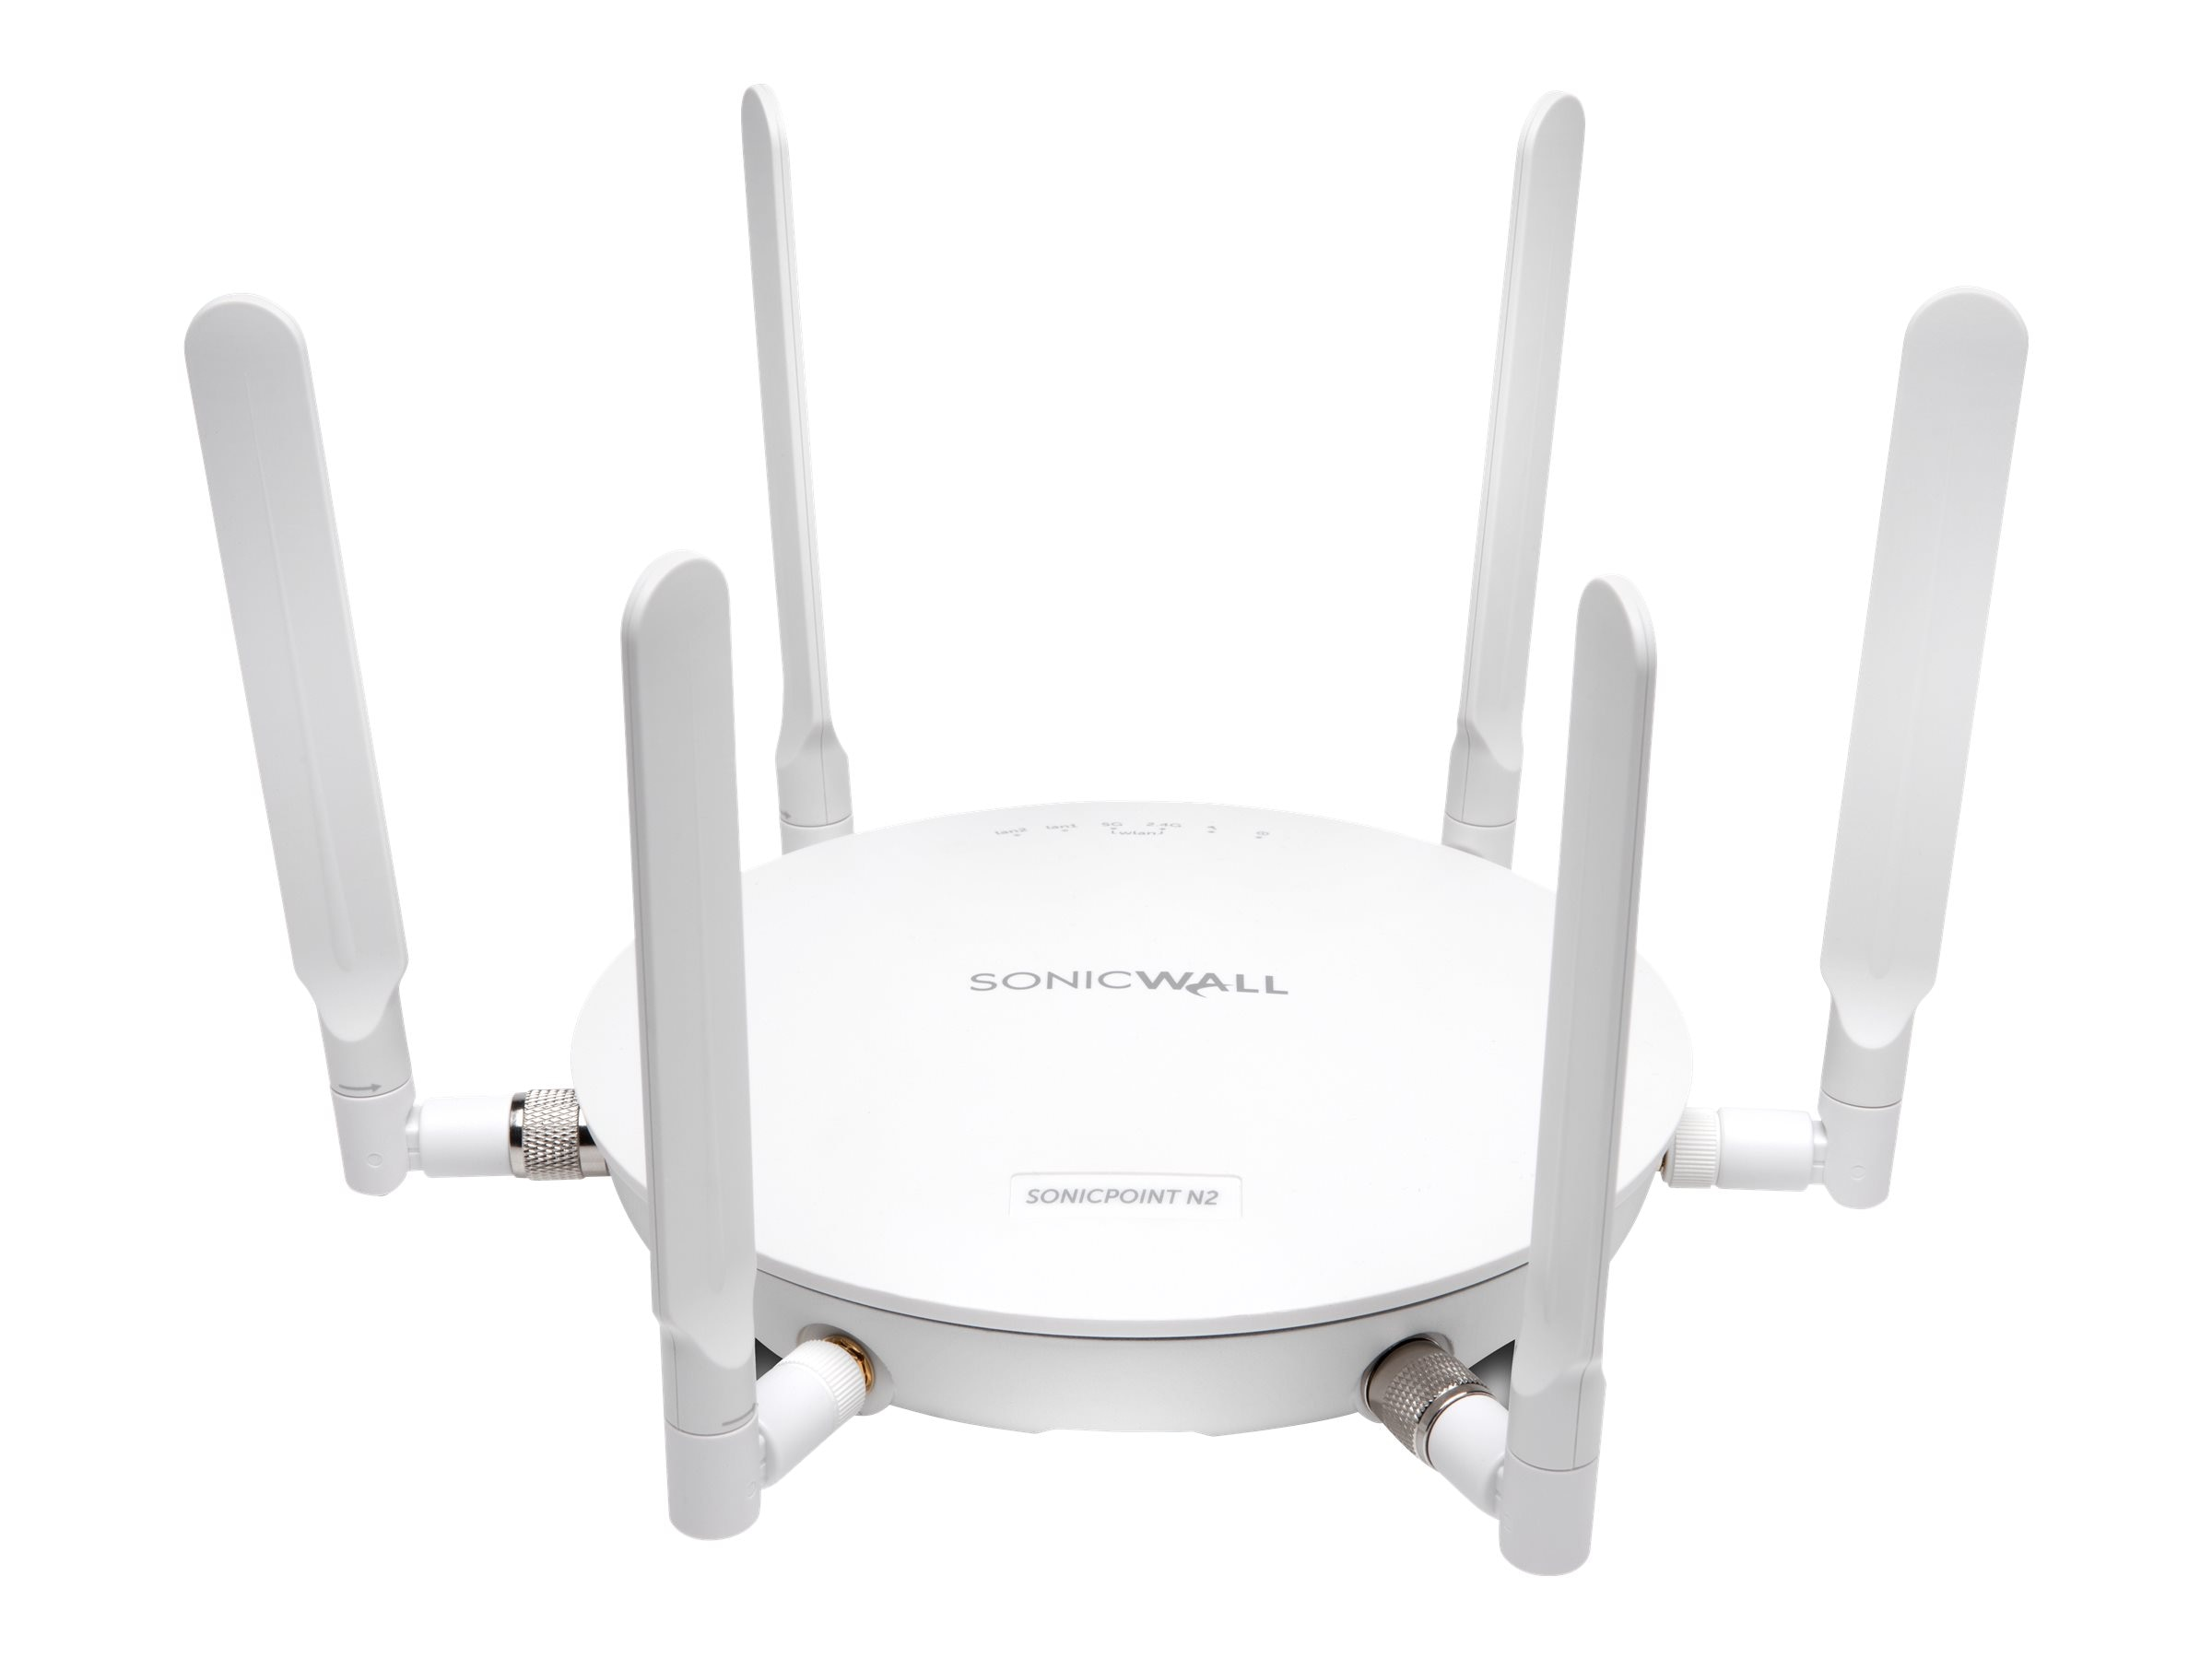 SonicWALL 4-Pack SonicPoint N2 w o POE Injector & 24x7 Support (3 Years)